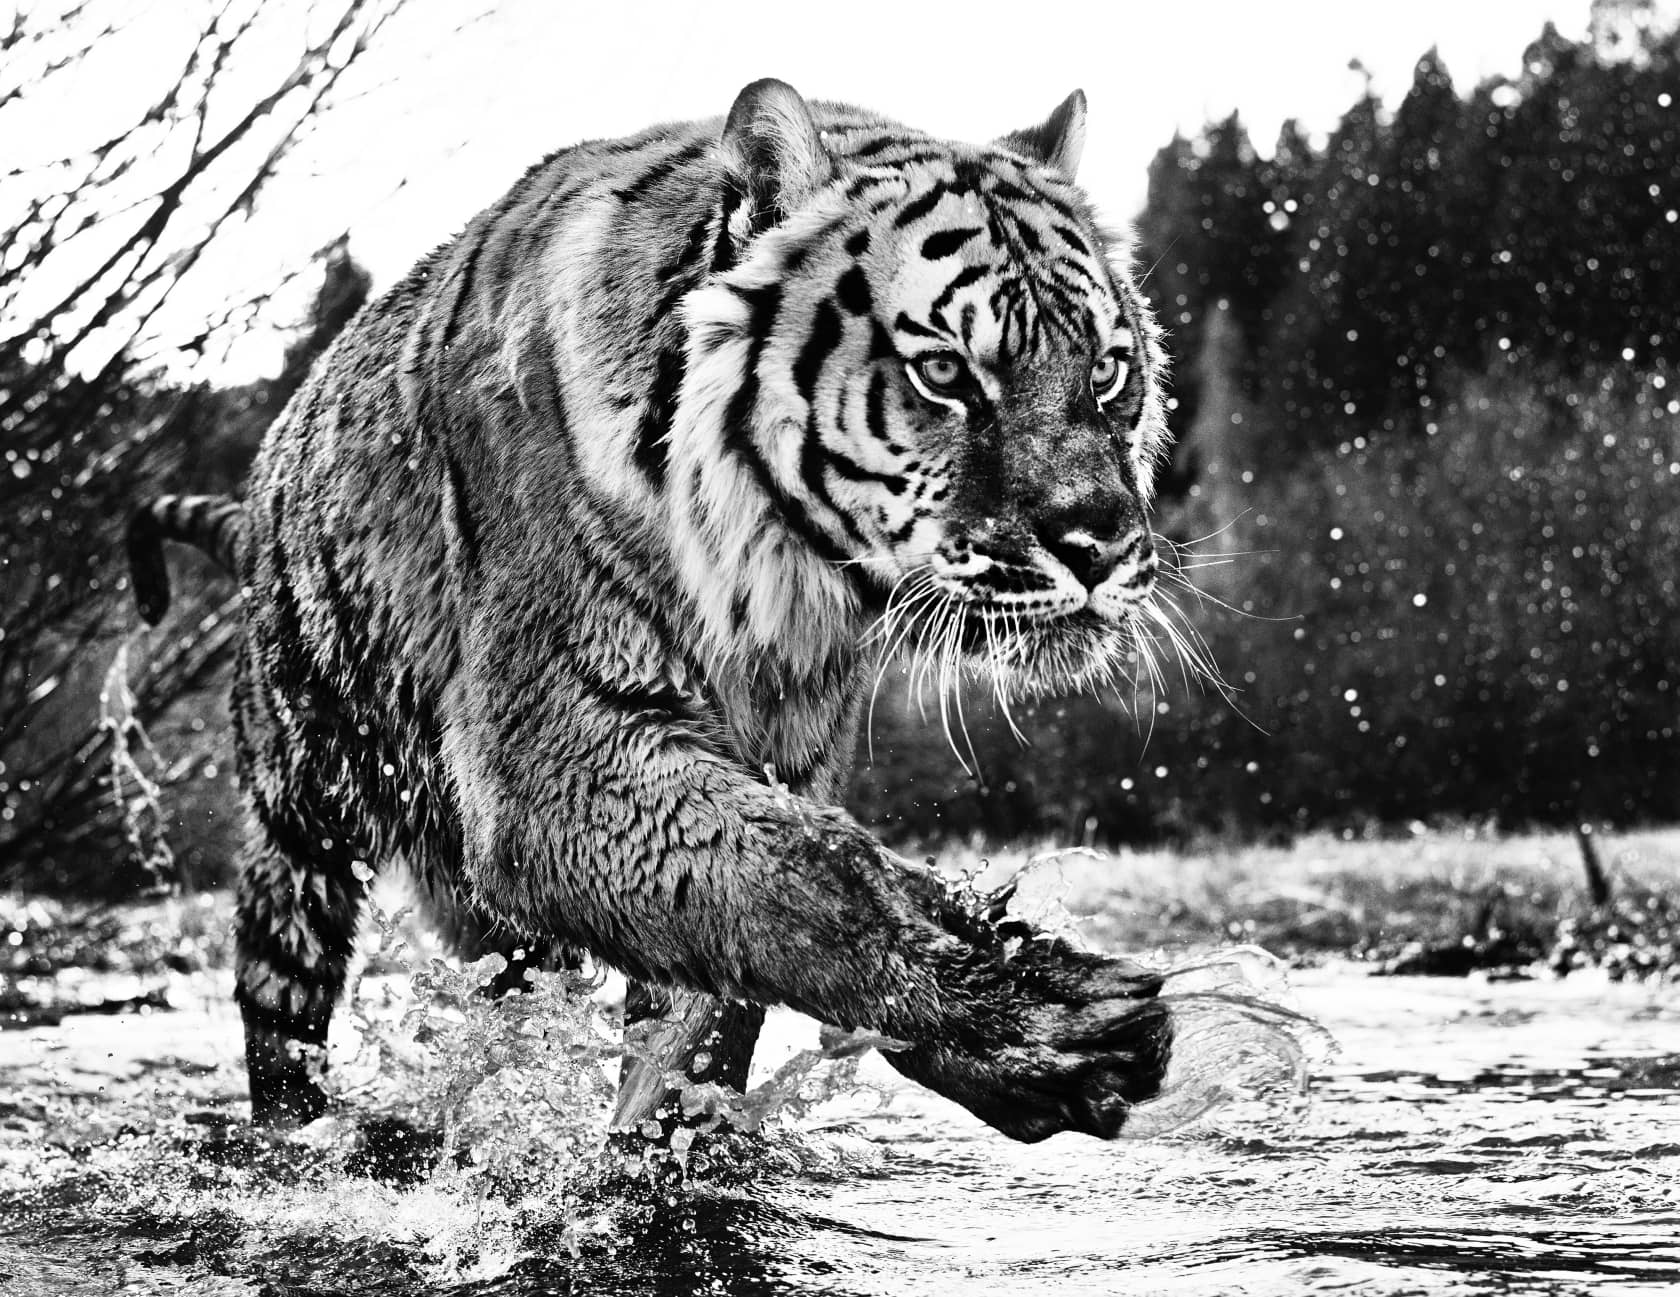 David Yarrow, Mystic River, 2015